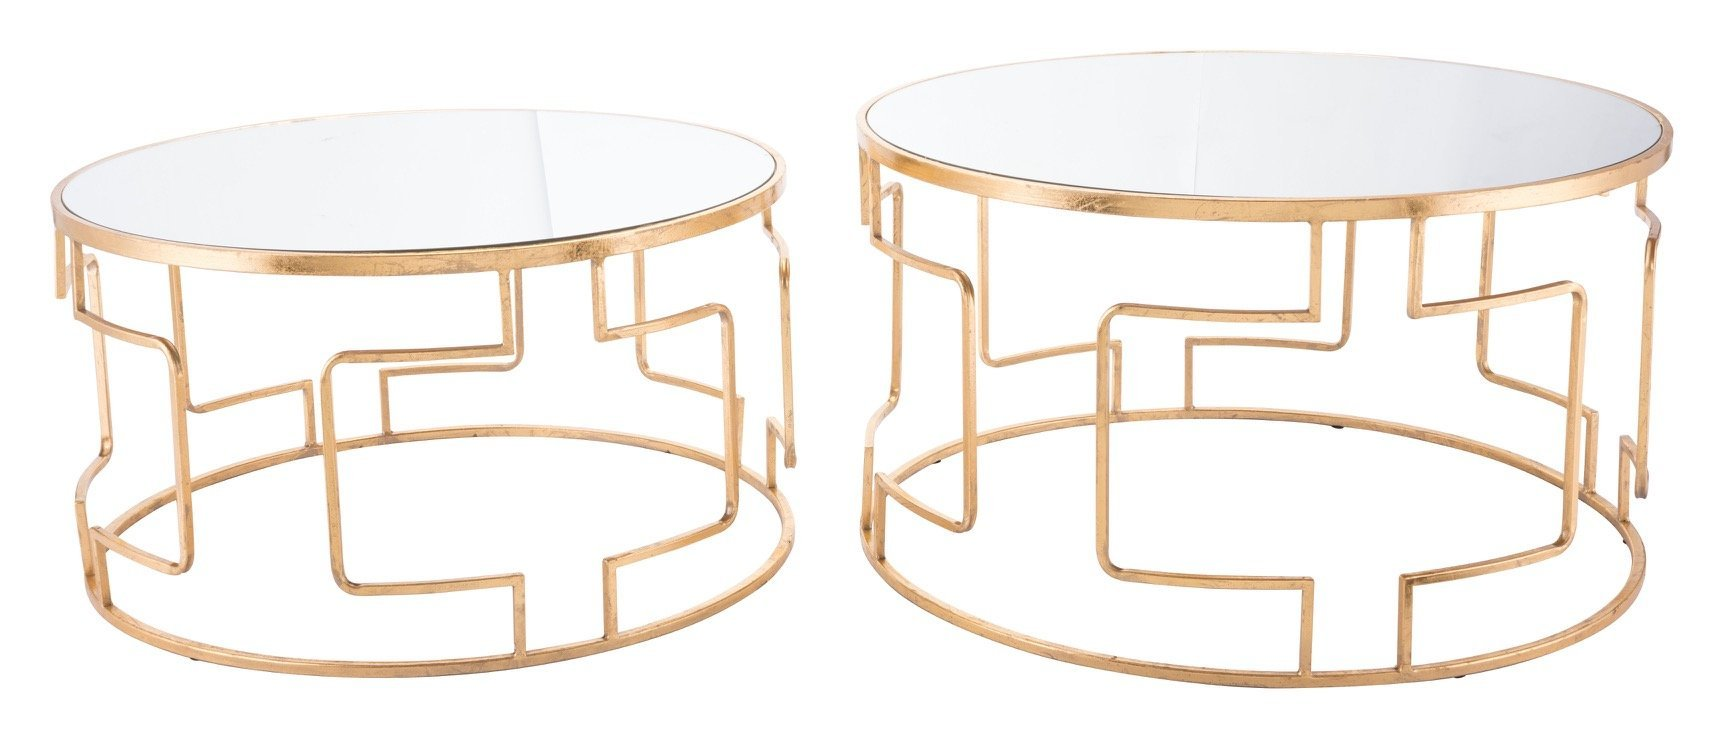 king round accent tables gold with mirrored glass top set side alan decor table entry furniture clear trunk coffee fur finish unfinished hanging wall clock modern dressing verizon